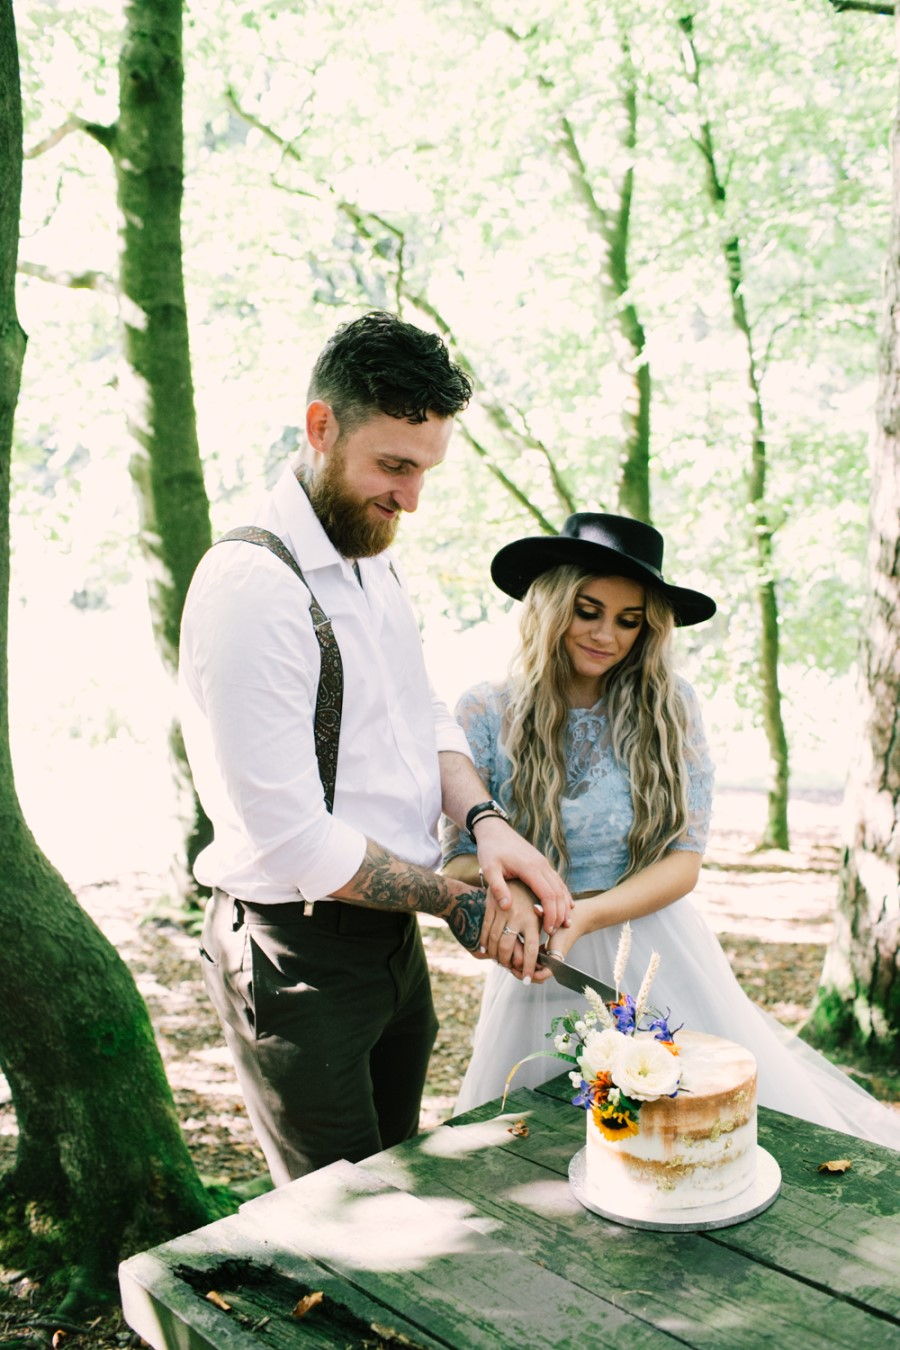 bride and groom cutting cake in the forest - micro-wedding - forest elopement - small weddings - alternative wedding - outdoor wedding - covid wedding